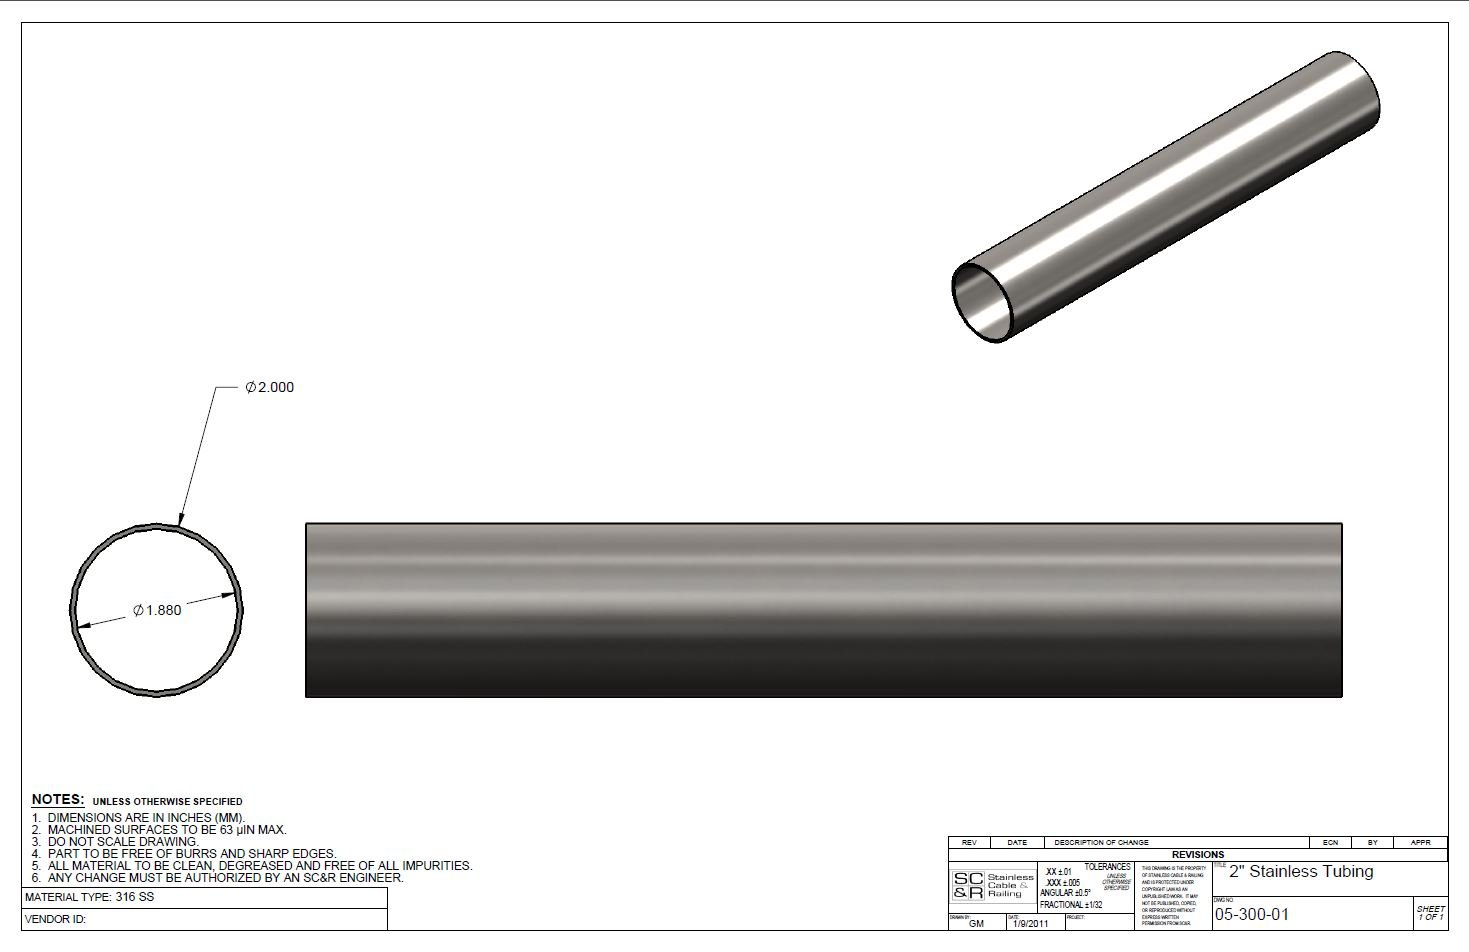 Brushed Finish T 316 Stainless Steel Tube in Various Lengths : 2 Inch OD, 1.88 Inch ID, 1.6 MM Wall (36 Inches) Intermediate Post